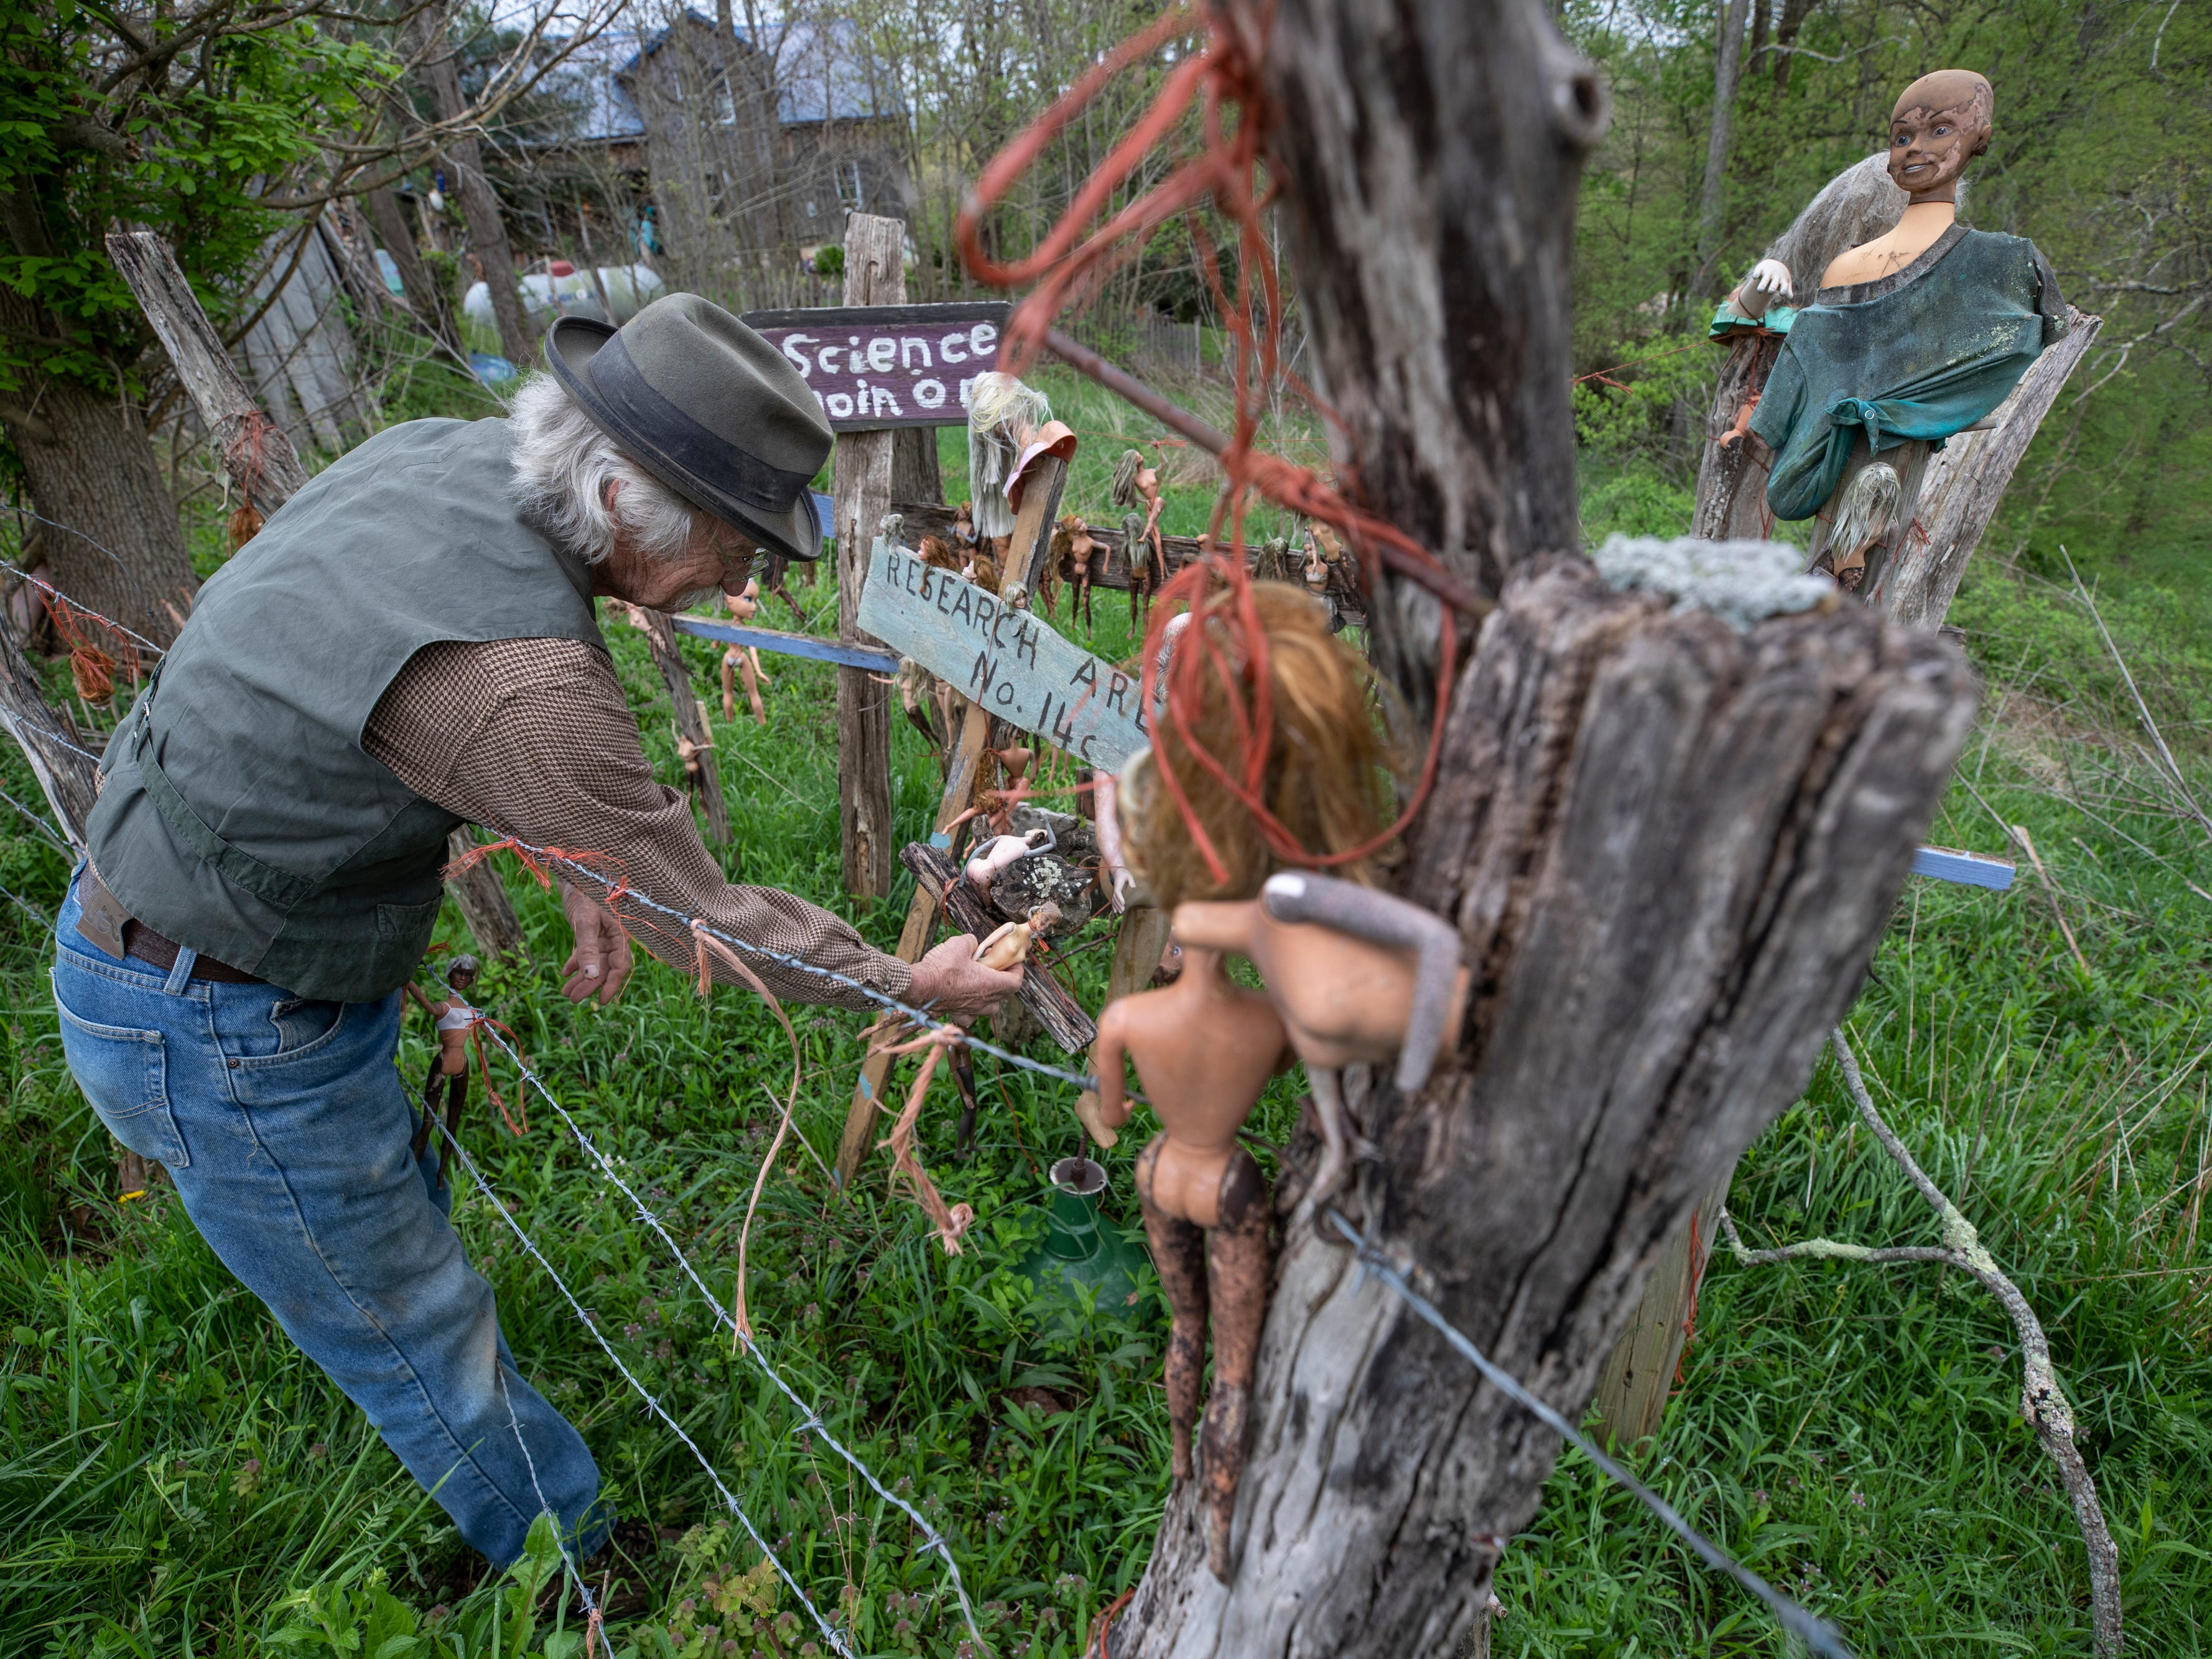 Cecil Ison adjusts some of the dolls in an area devoted to Barbie and Barbie wanna-be dolls at the Home for Wayward Babydolls. April 19, 2019